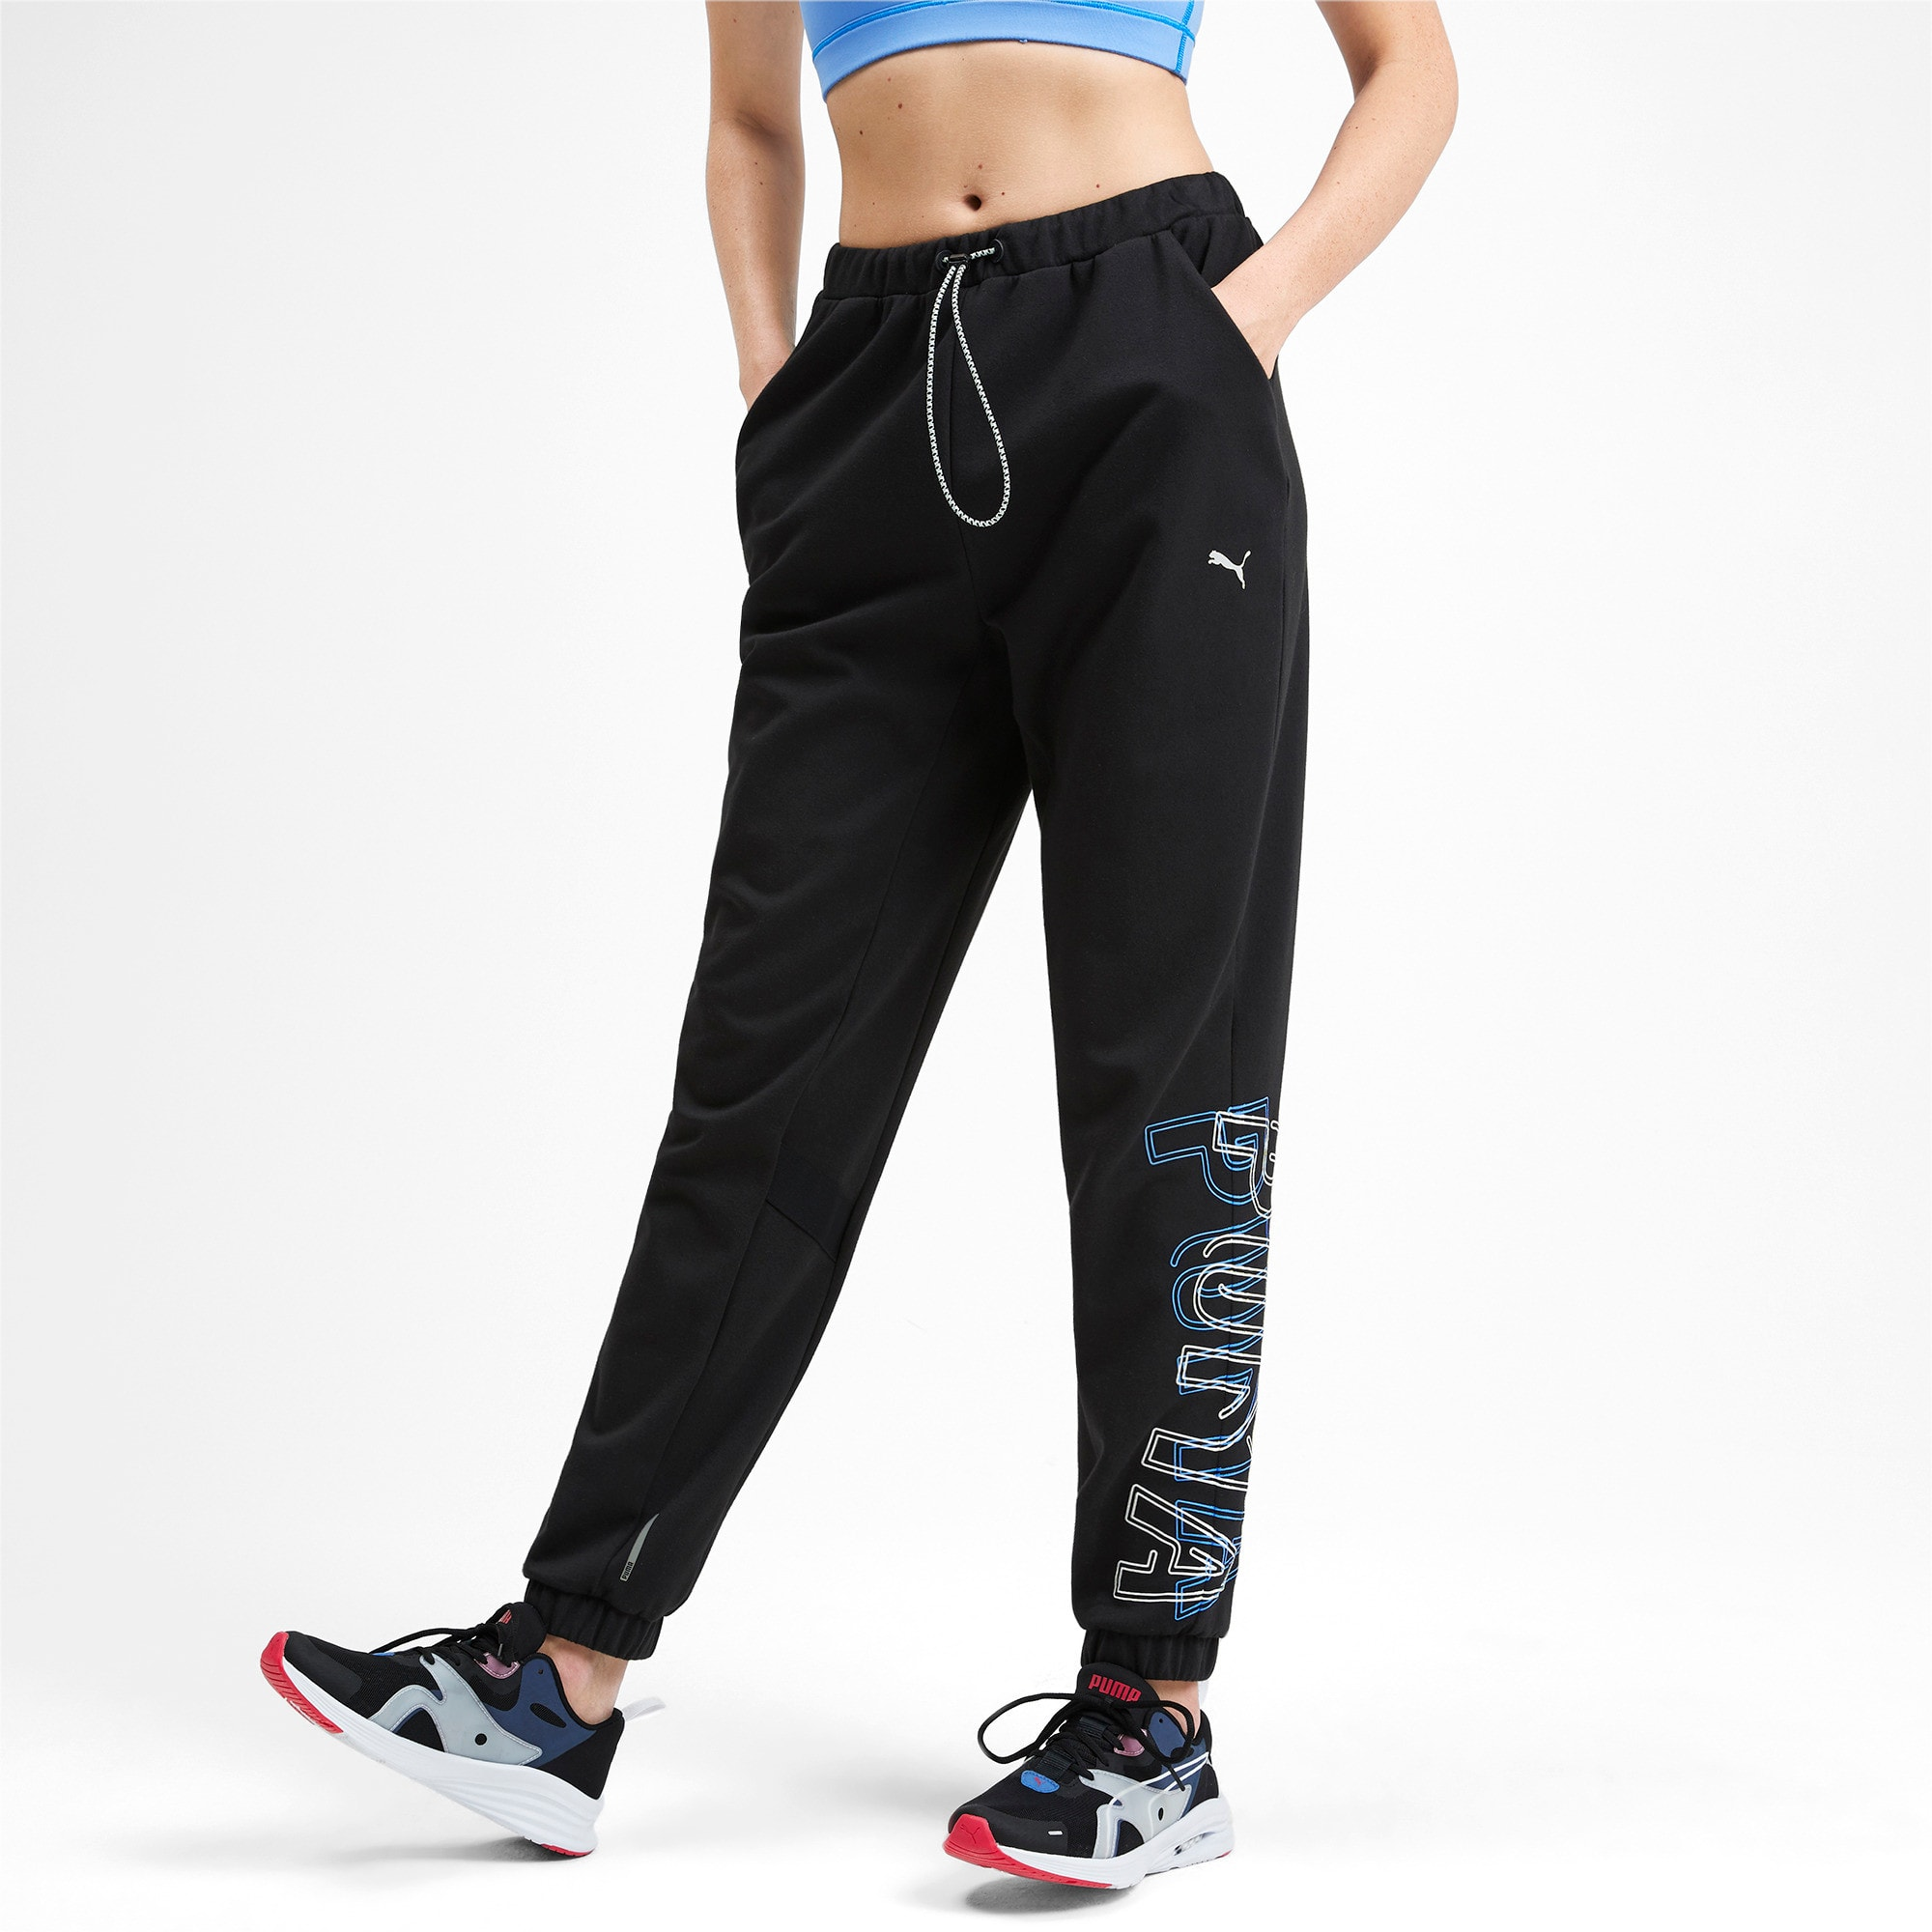 Thumbnail 1 of HIT Feel It Knitted Women's Training Sweatpants, Puma Black, medium